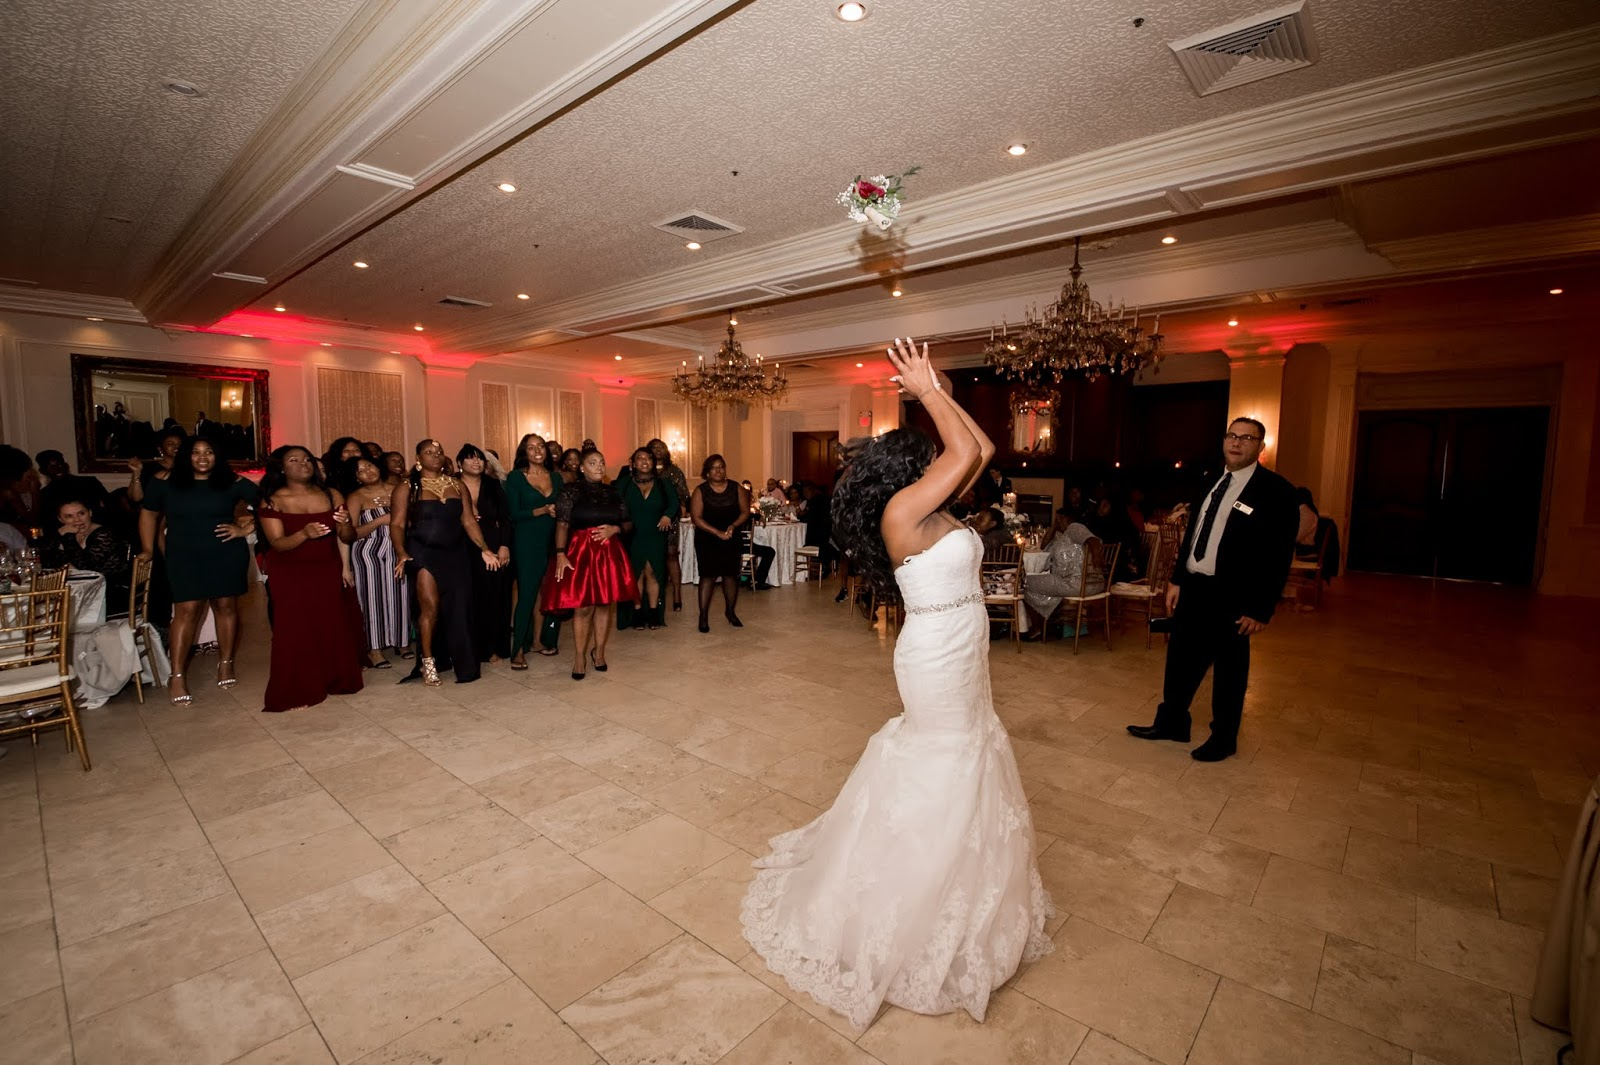 Bride Tossing Her Flower Bouquet